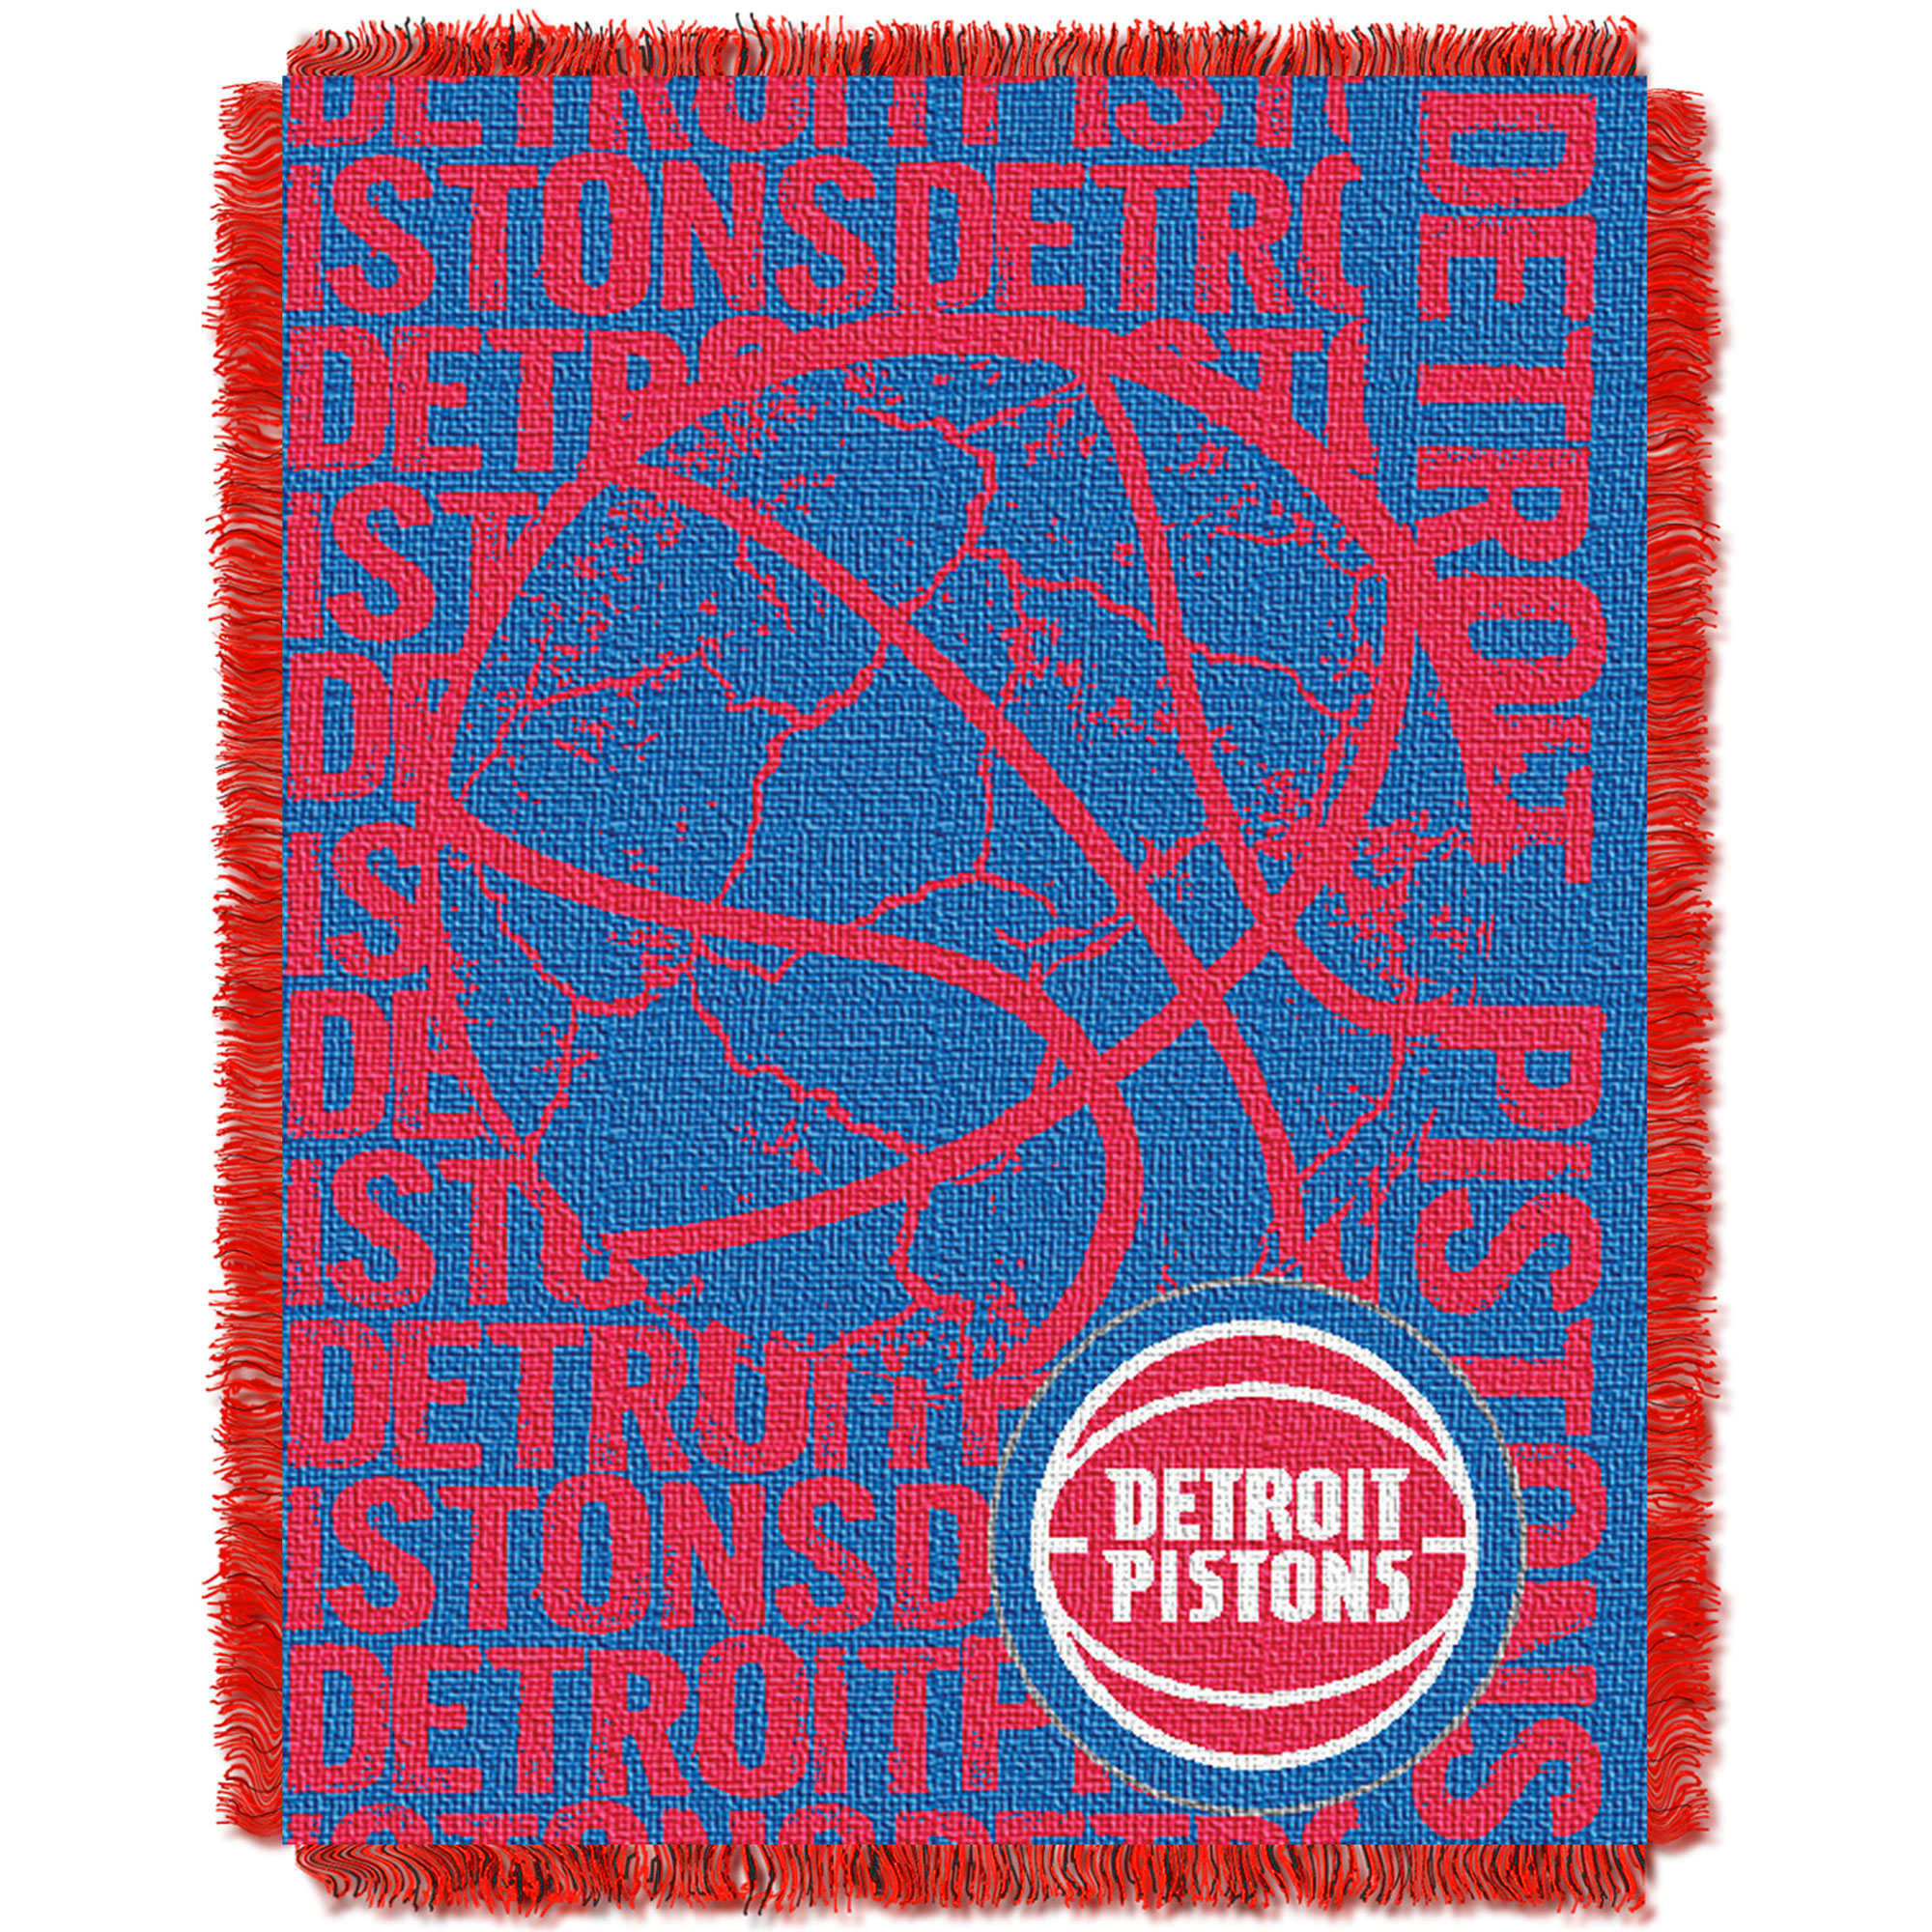 Detroit Pistons The Northwest Company 46'' x 60'' Double Play Jacquard Throw - No Size